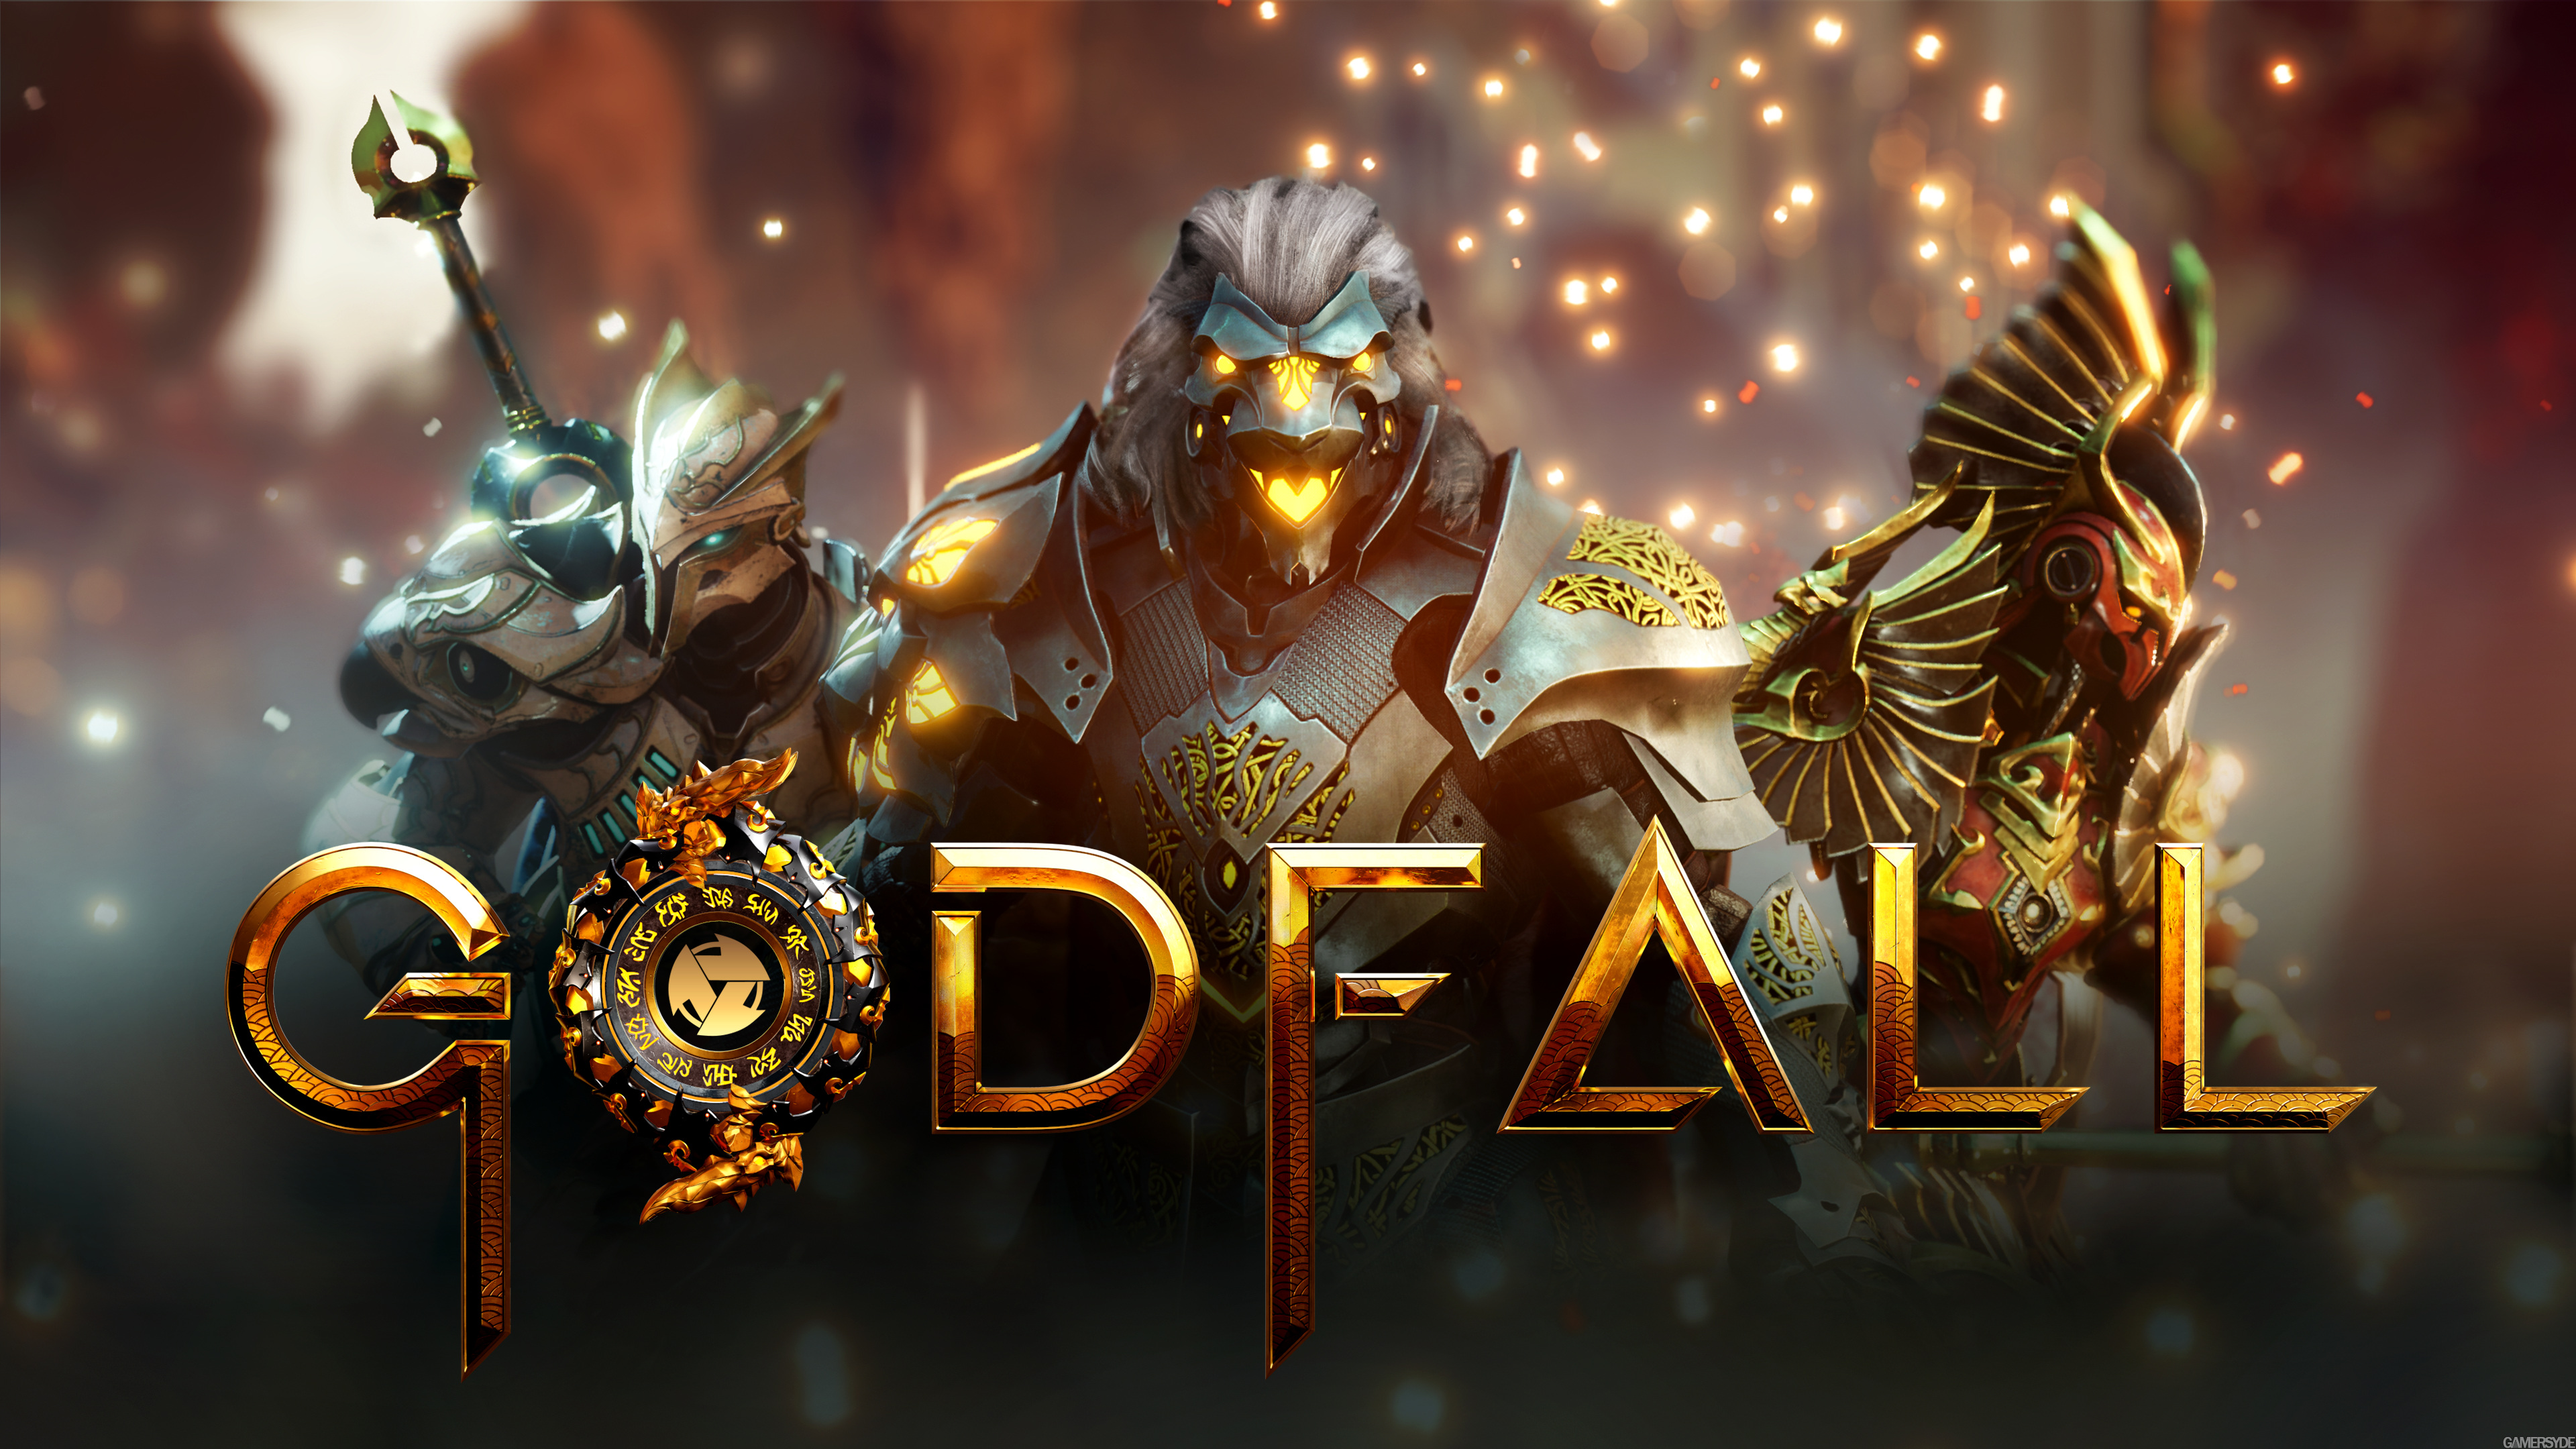 Official Godfall PC gameplay trailer released